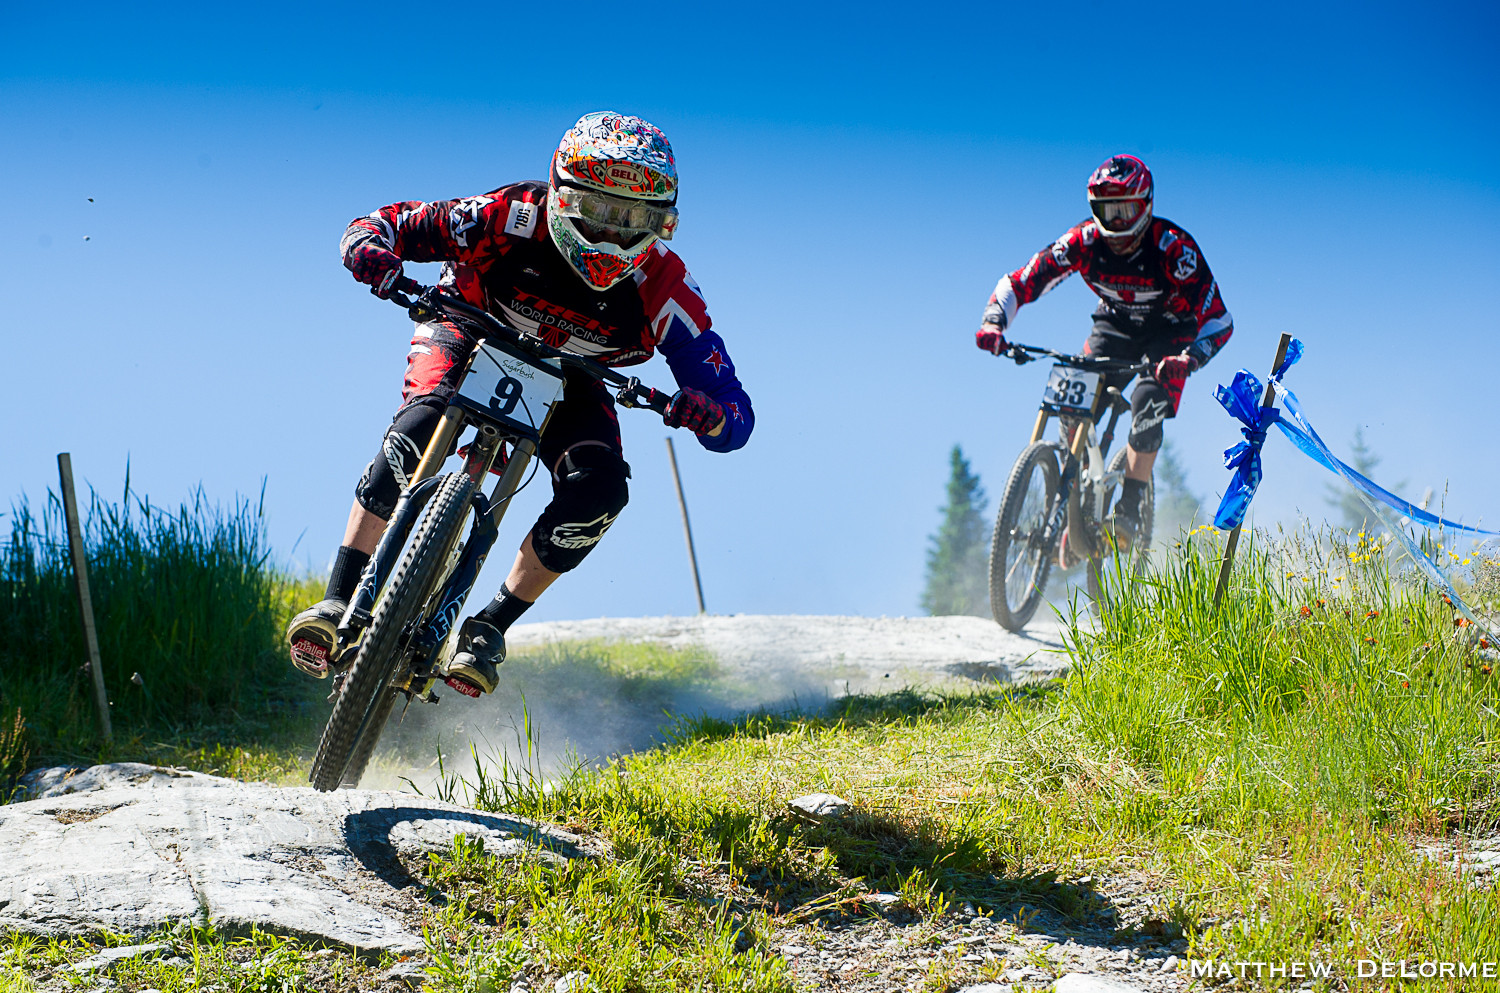 MTB GP at Sugarbush Vermont, Leov First in Seeding - Grand Prix Sugarbush Saturday - Mountain Biking Pictures - Vital MTB